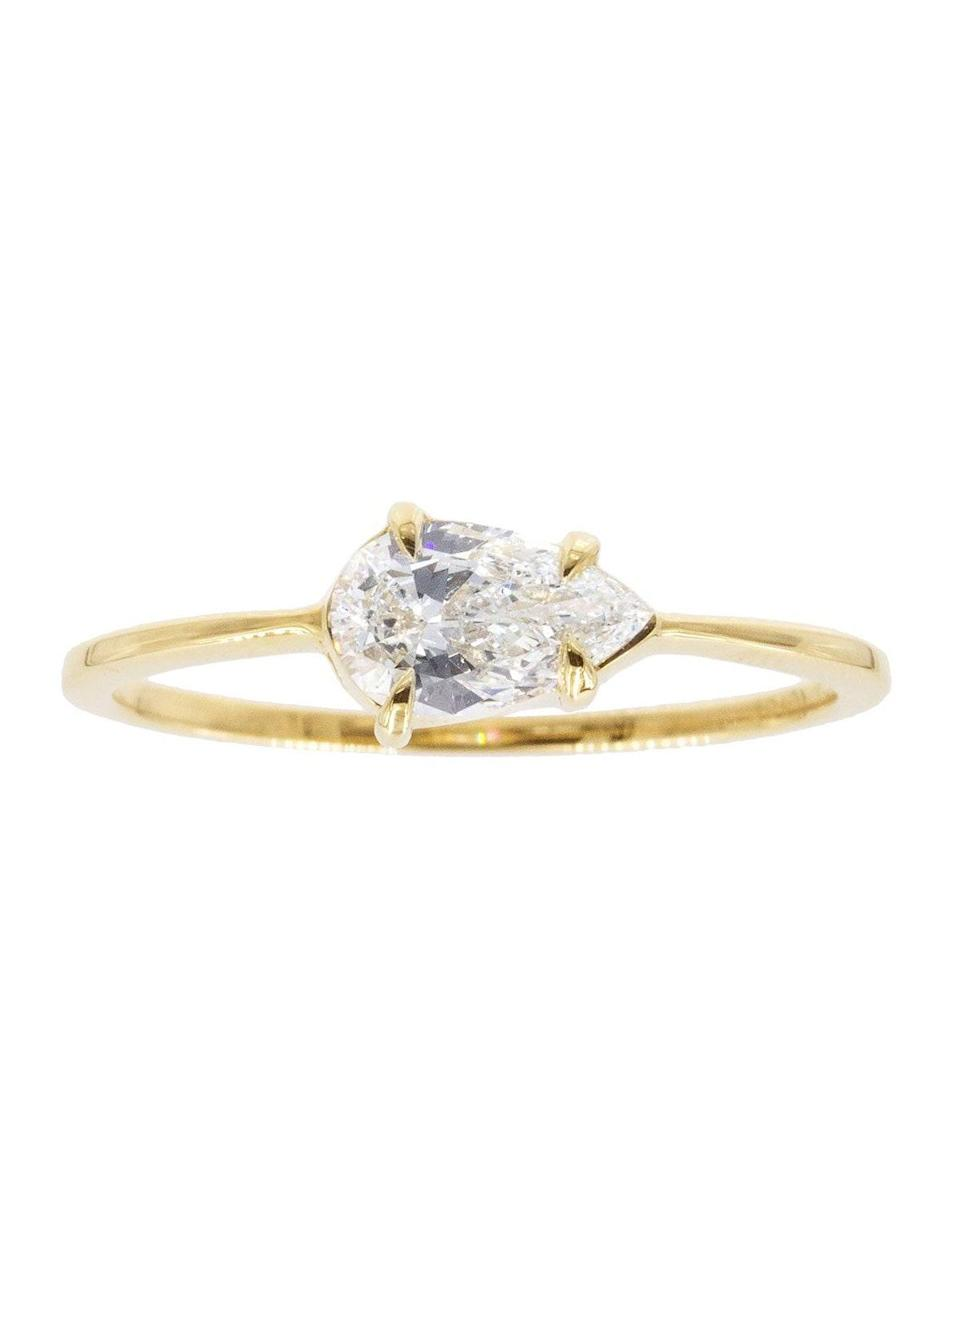 """""""It's a great way to have a subtle and unique spin on a more traditional solitaire design,"""" says Nicholson of this style. $4950, Gillian Conroy. <a href=""""https://gillianconroy.com/collections/engagement-rings/products/0-50-carat-pear-white-diamond-18-karat-yellow-gold-sophia-ring"""" rel=""""nofollow noopener"""" target=""""_blank"""" data-ylk=""""slk:Get it now!"""" class=""""link rapid-noclick-resp"""">Get it now!</a>"""